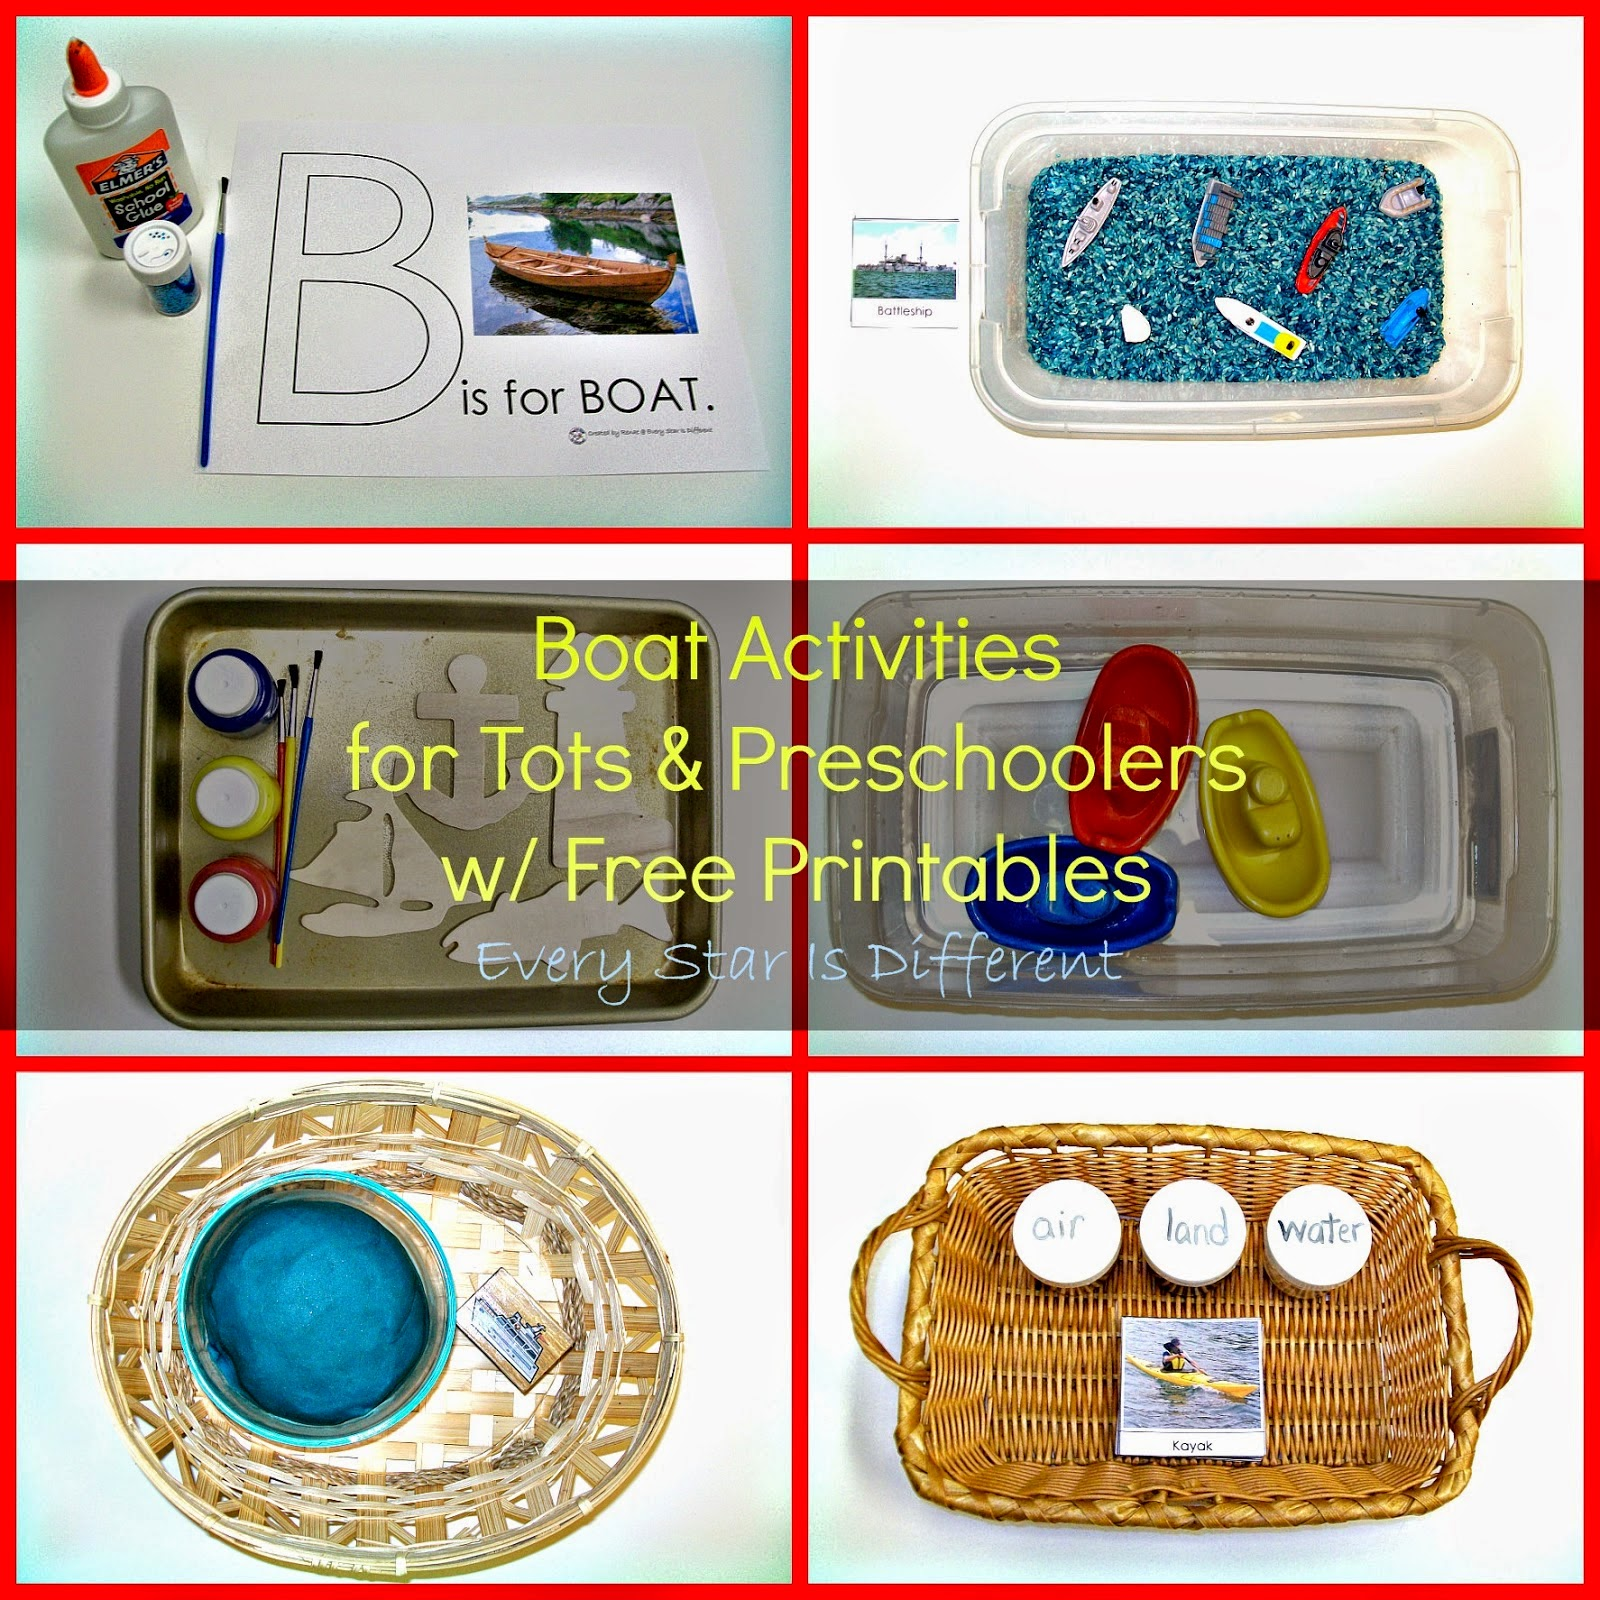 http://www.everystarisdifferent.blogspot.com/2014/09/boat-activities-for-tots-preschoolers-w.html